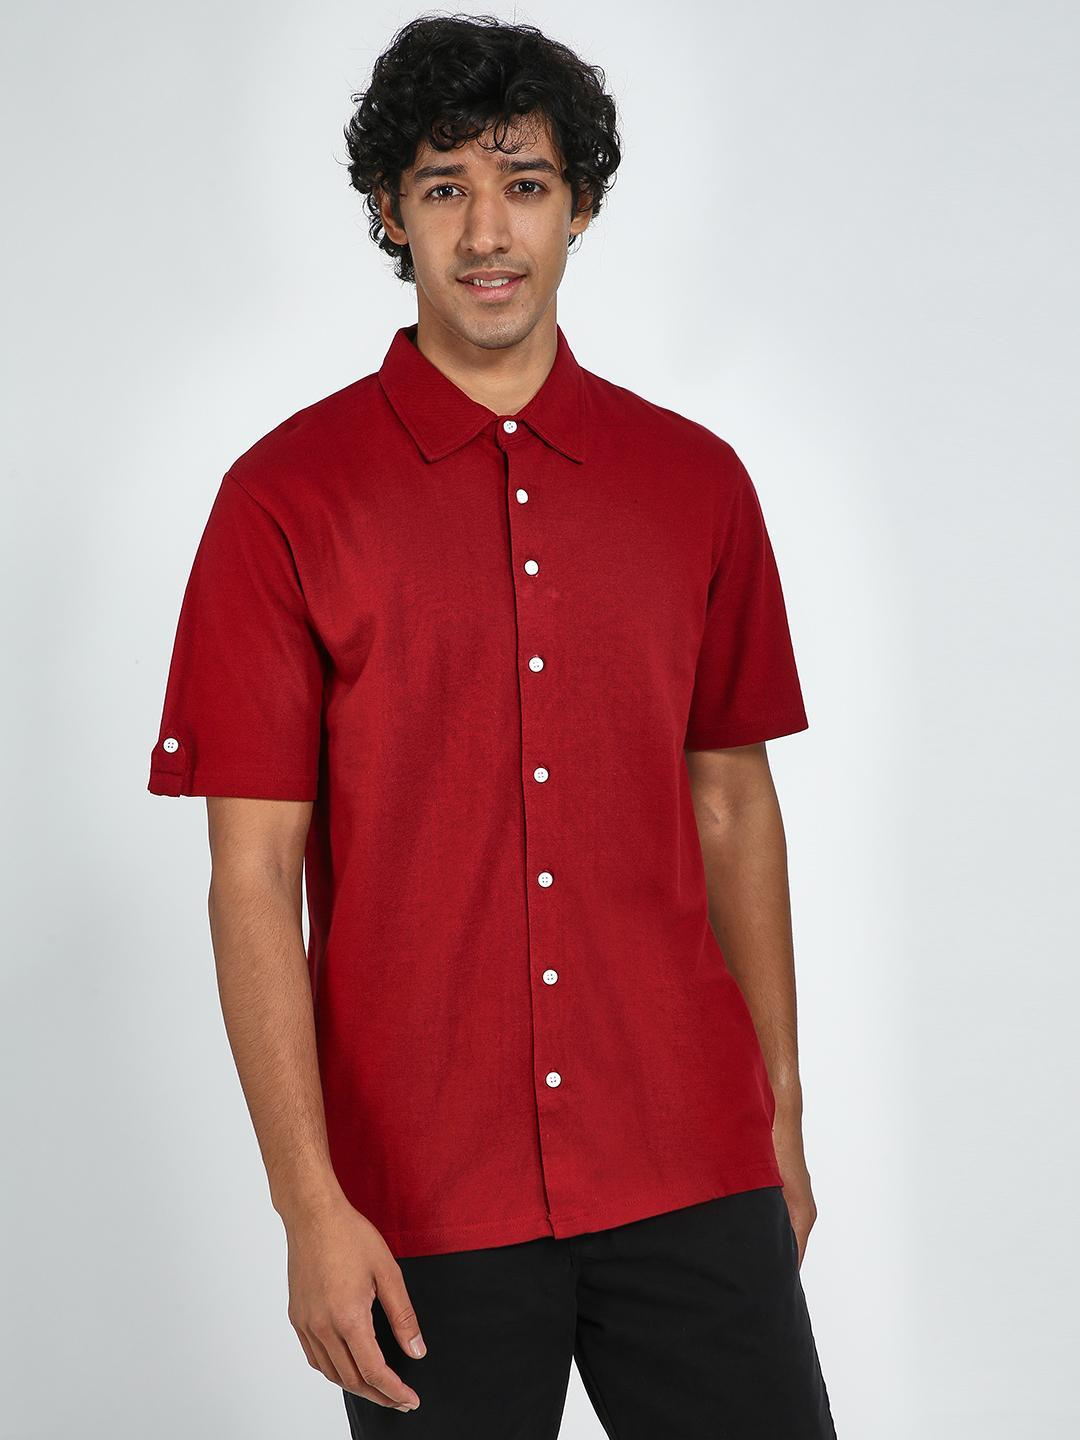 Blue Saint Maroon Slim Fit Casual Shirt 1